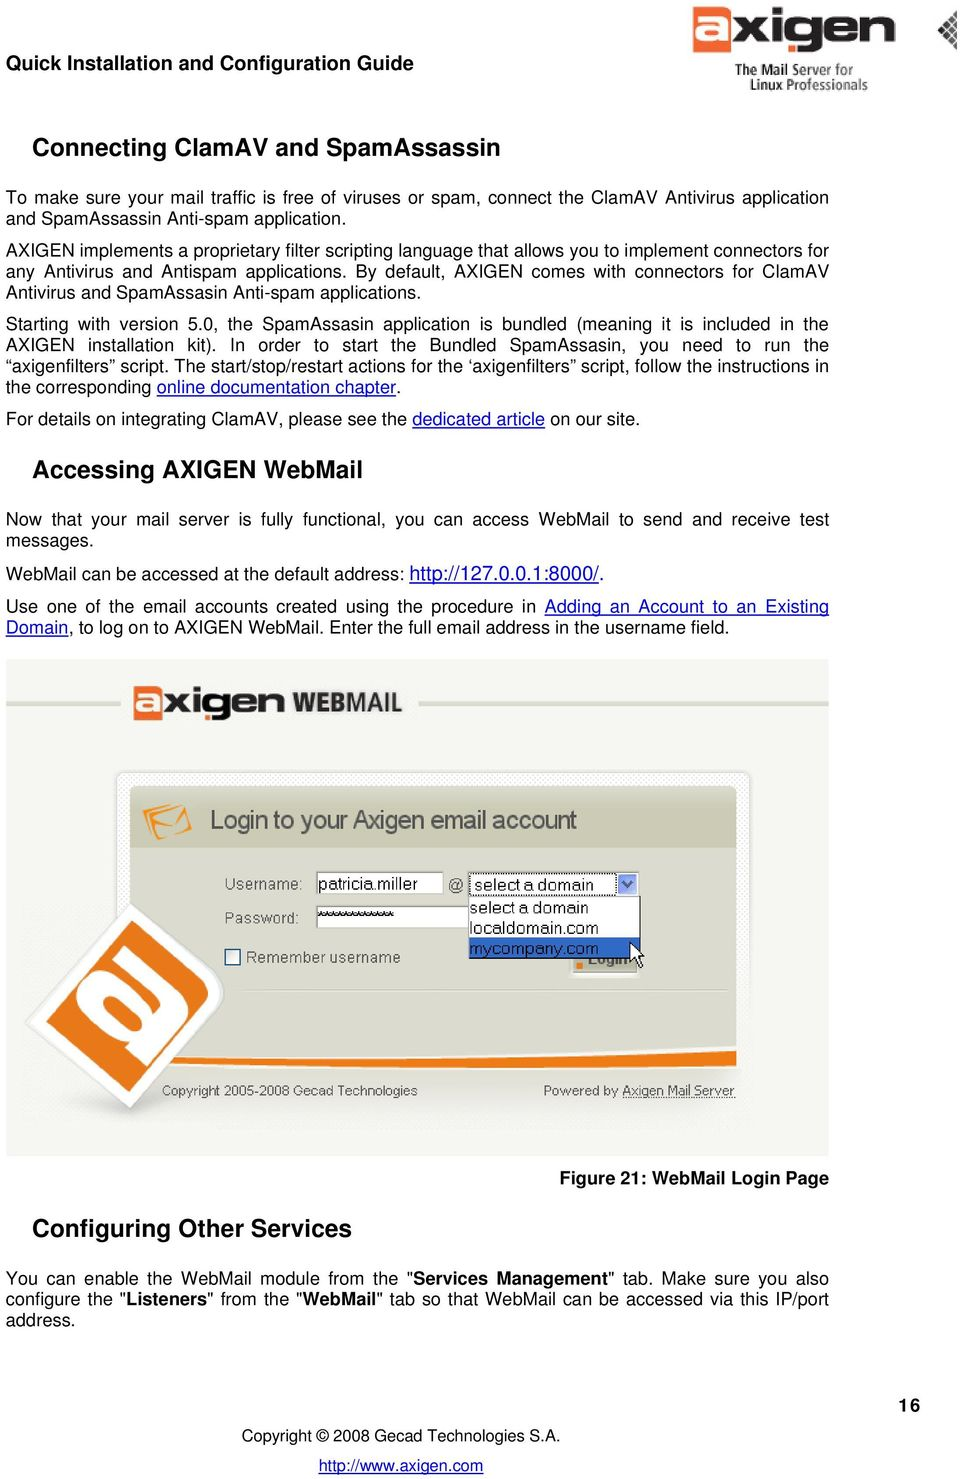 By default, AXIGEN comes with connectors for ClamAV Antivirus and SpamAssasin Anti-spam applications. Starting with version 5.